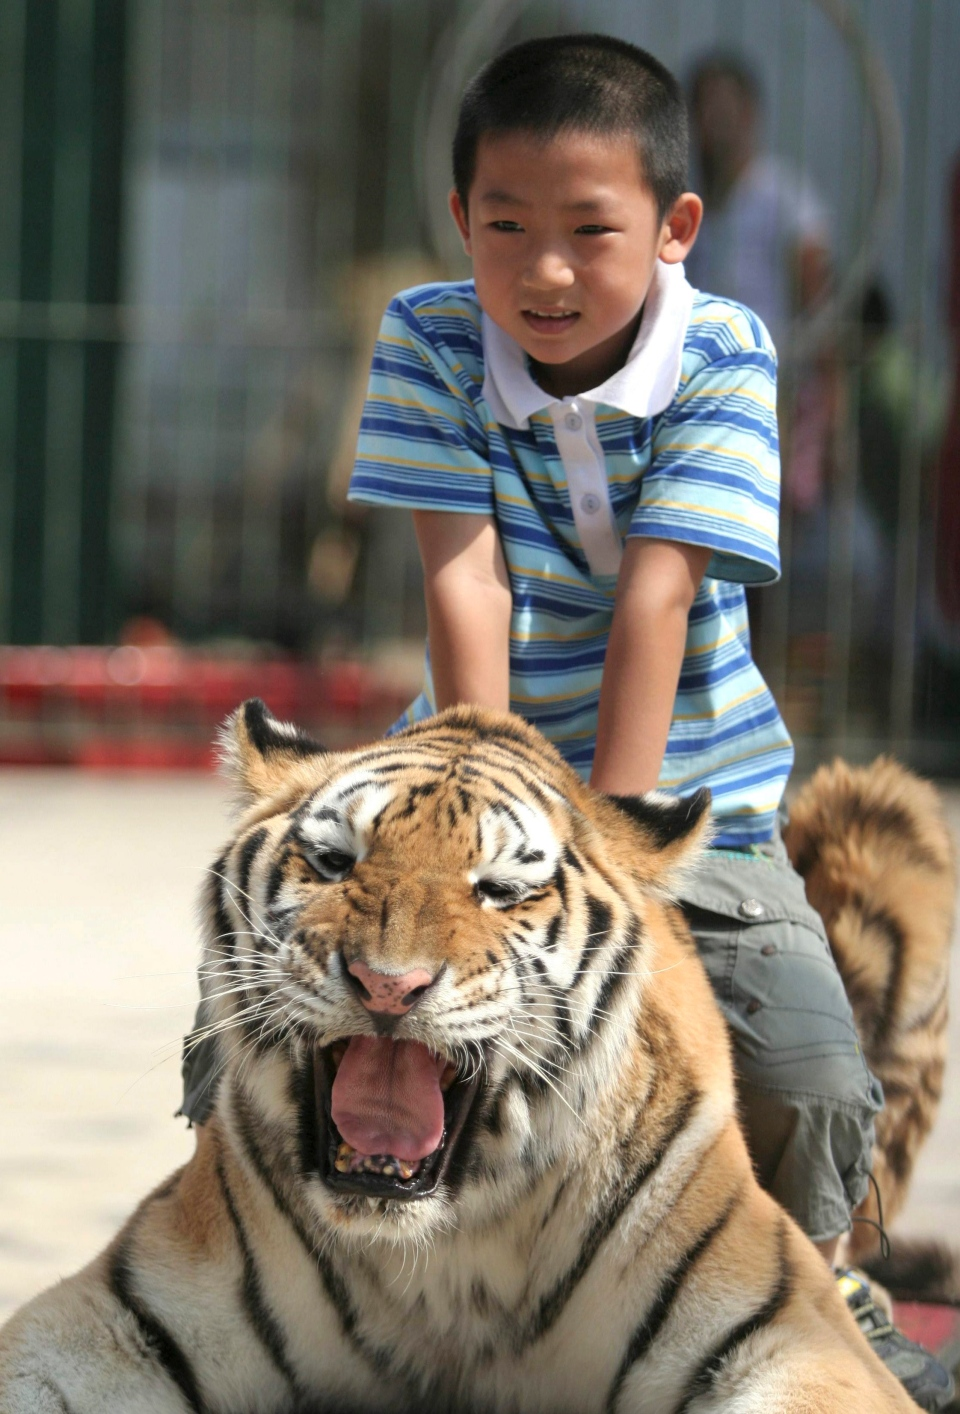 A boy poses for a photo on a circus tiger in Xiamen in southeast China on Tuesday, Sept. 30, 2008. (AP Photo)